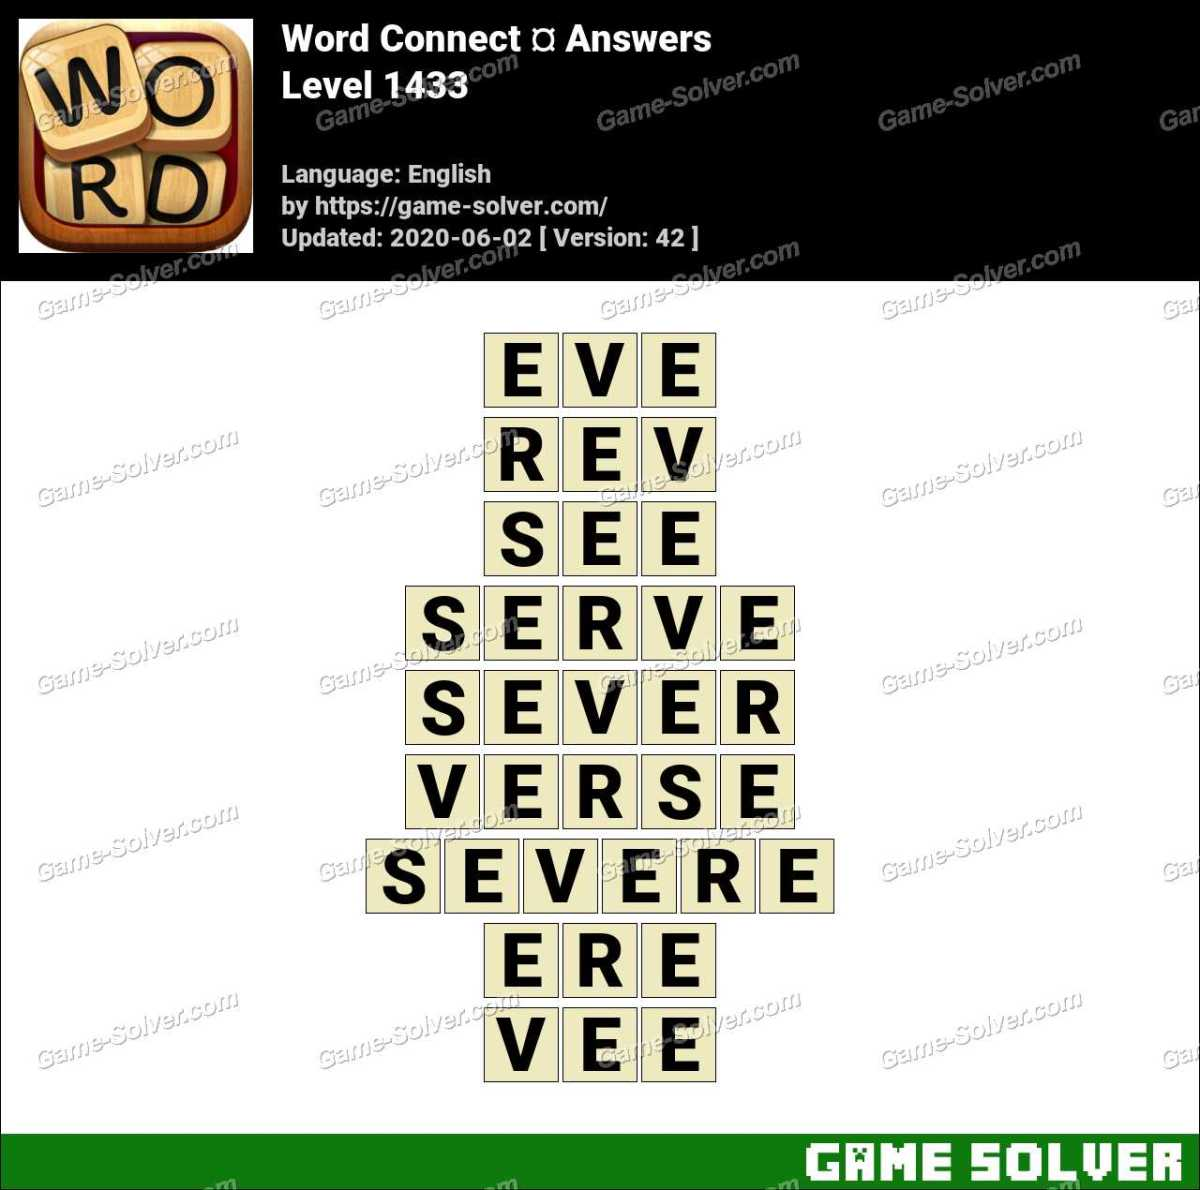 Word Connect Level 1433 Answers